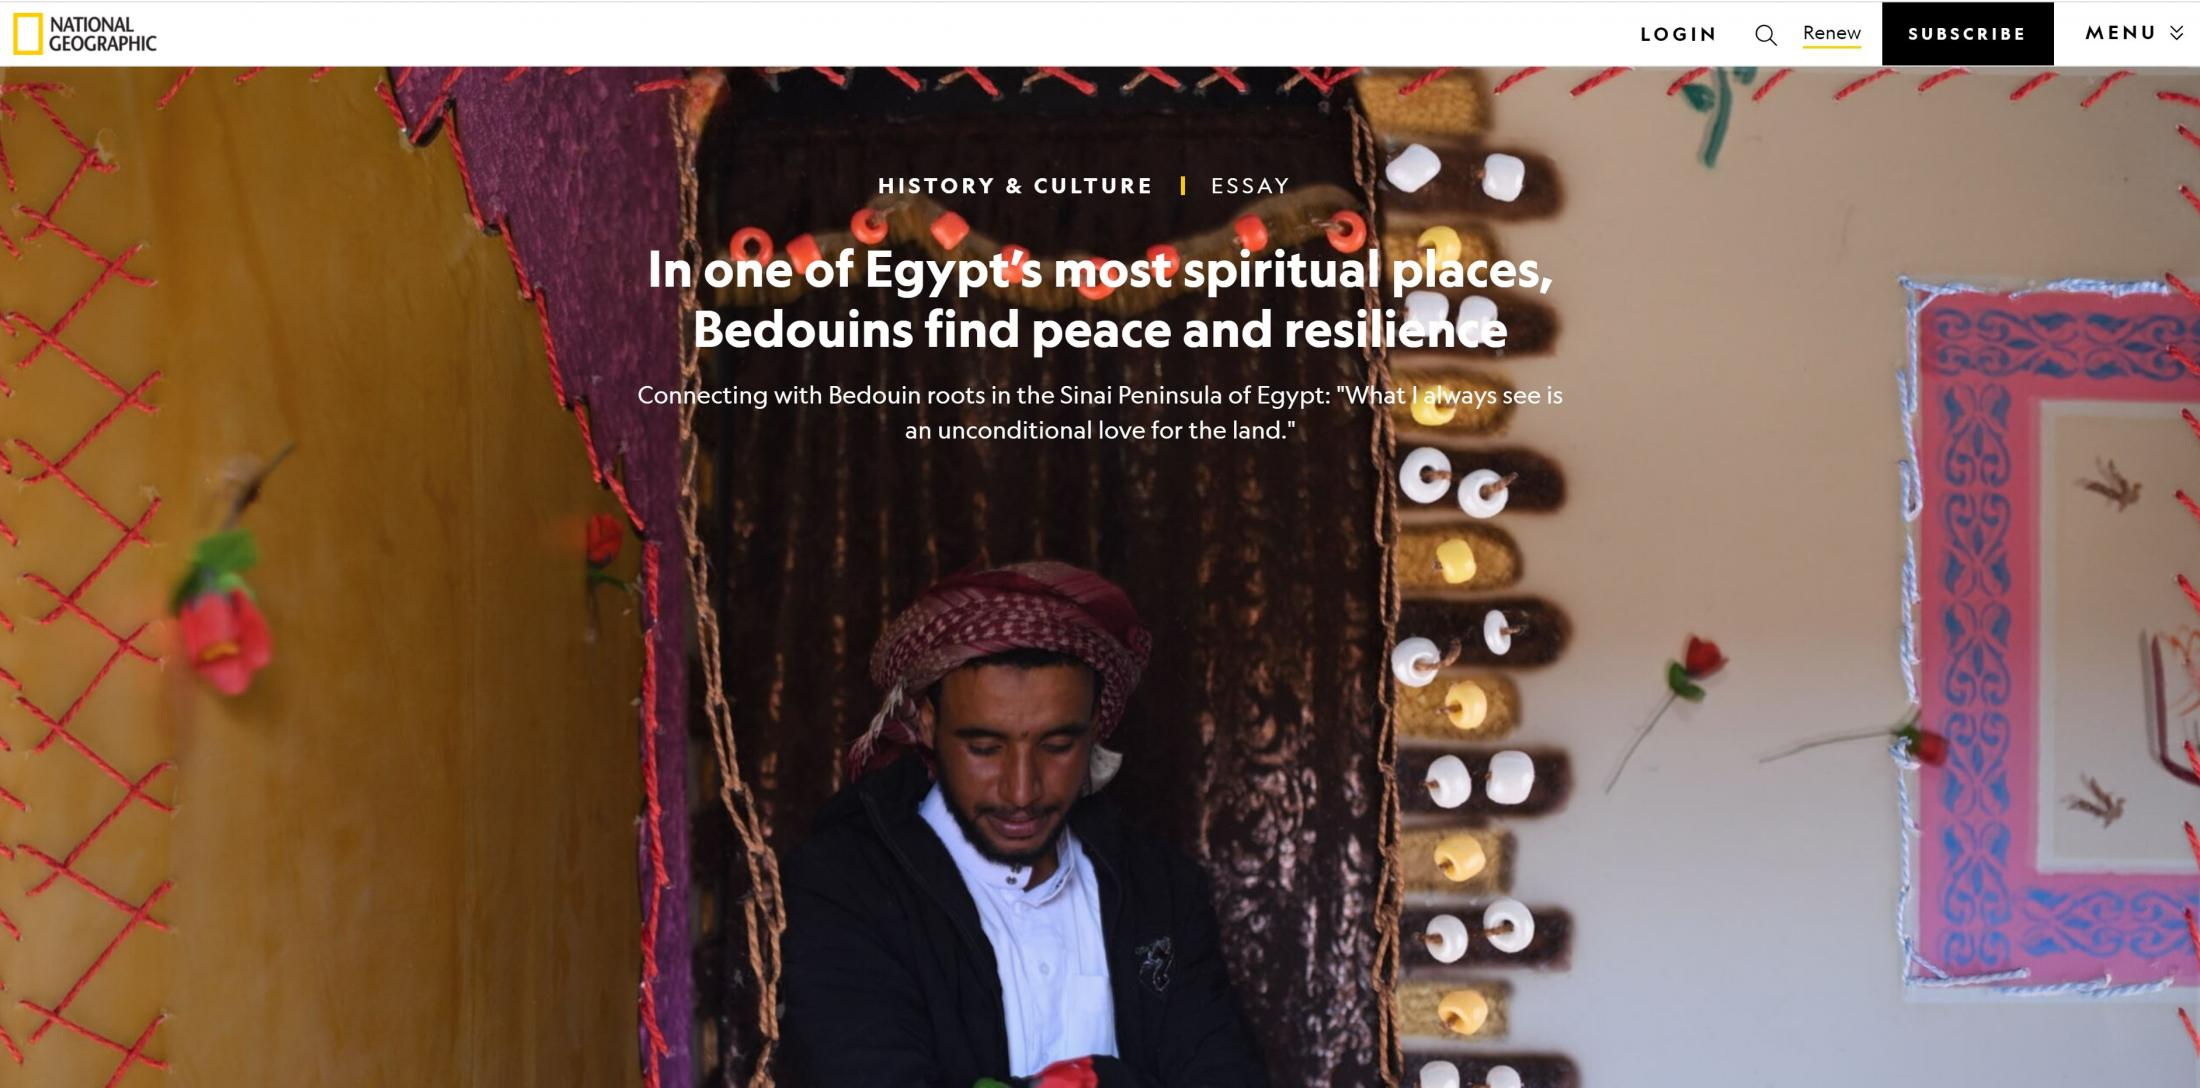 National Geographic, Photo essay digital publication, 2021 https://www.nationalgeographic.com/culture/article/in-one-of-egypts-most-spiritual-places-bedouins-find-peace-and-resilience